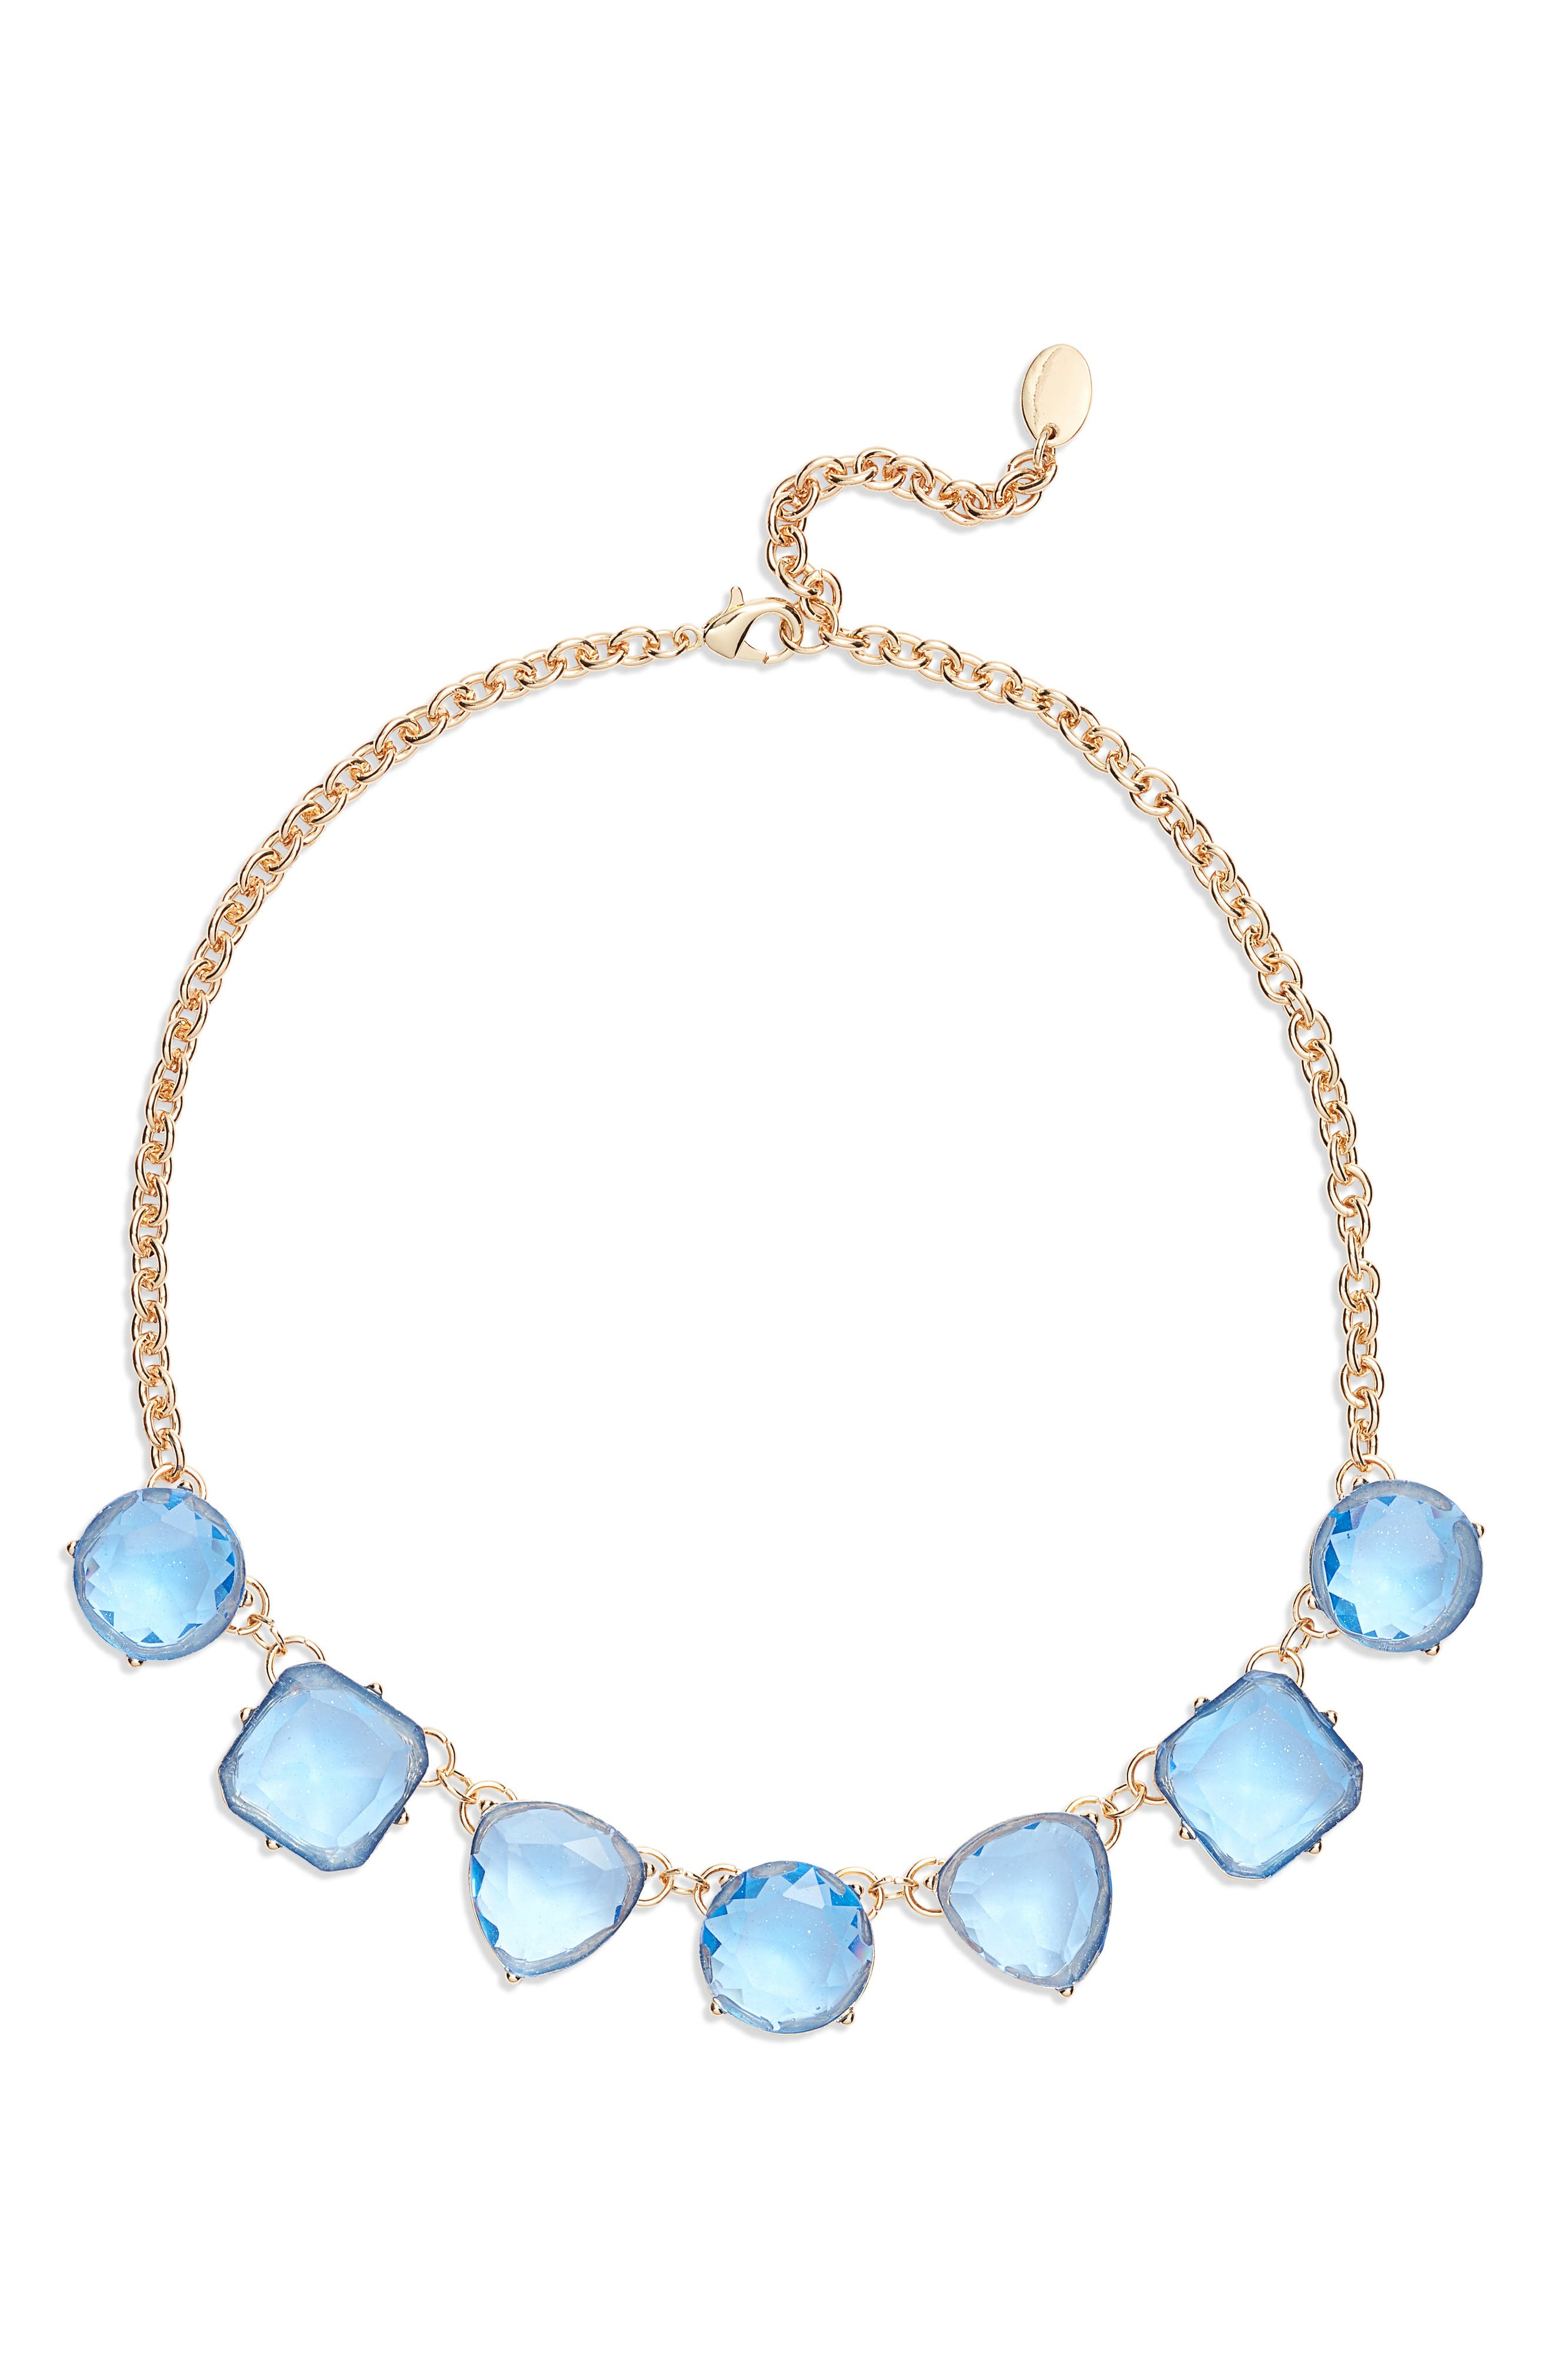 STELLA + RUBY Tilly Collar Necklace, Main, color, GOLD/ BLUE